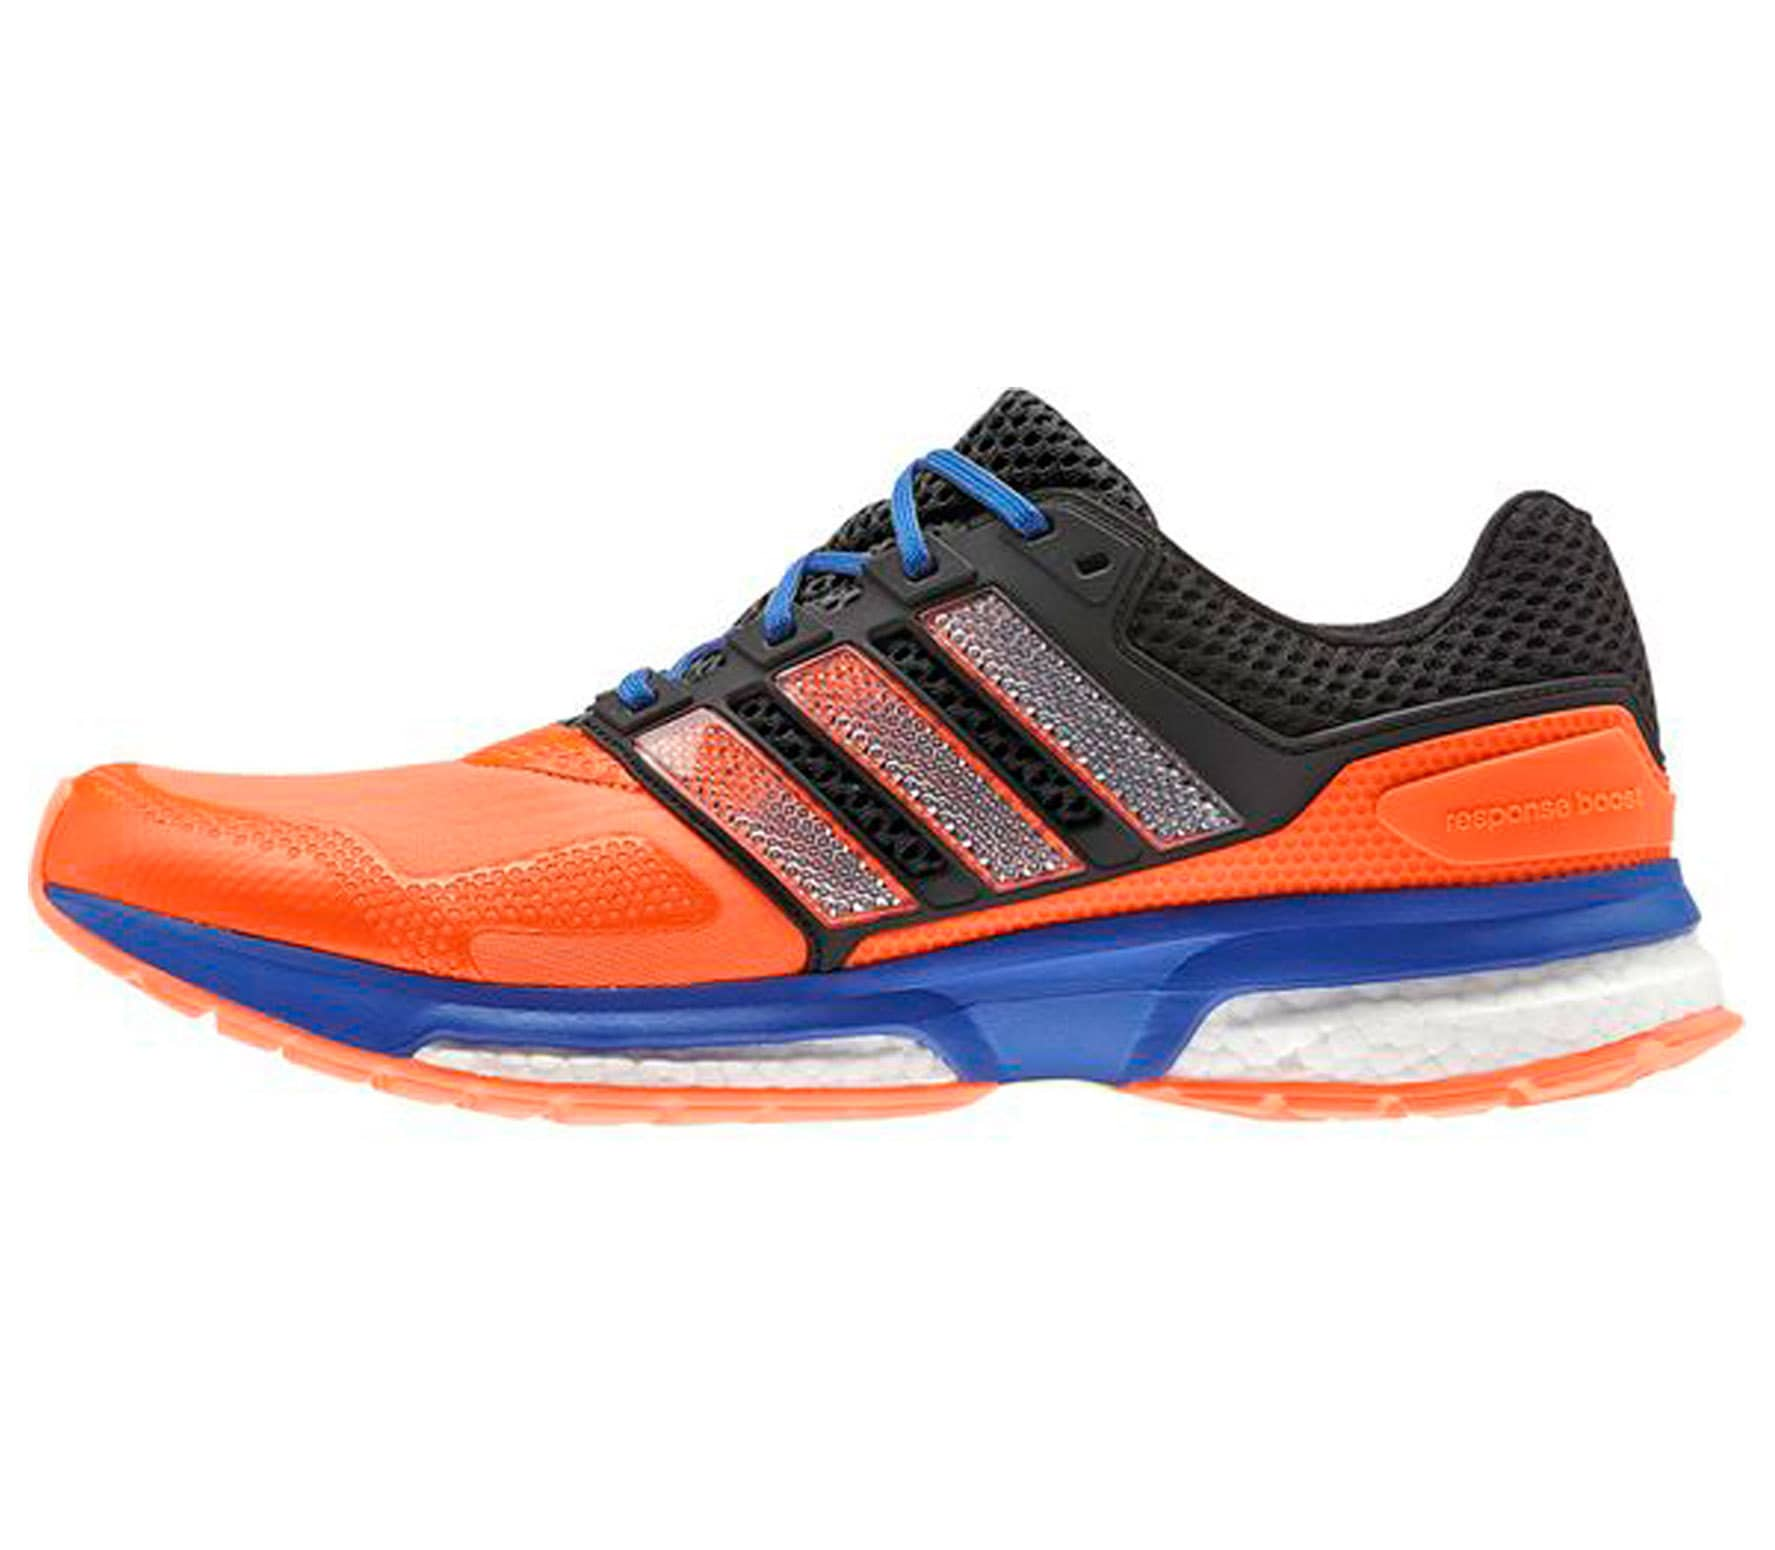 online store 40a8f 050bf Adidas - Response Boost 2 Techfit men s running shoes (orange blue)